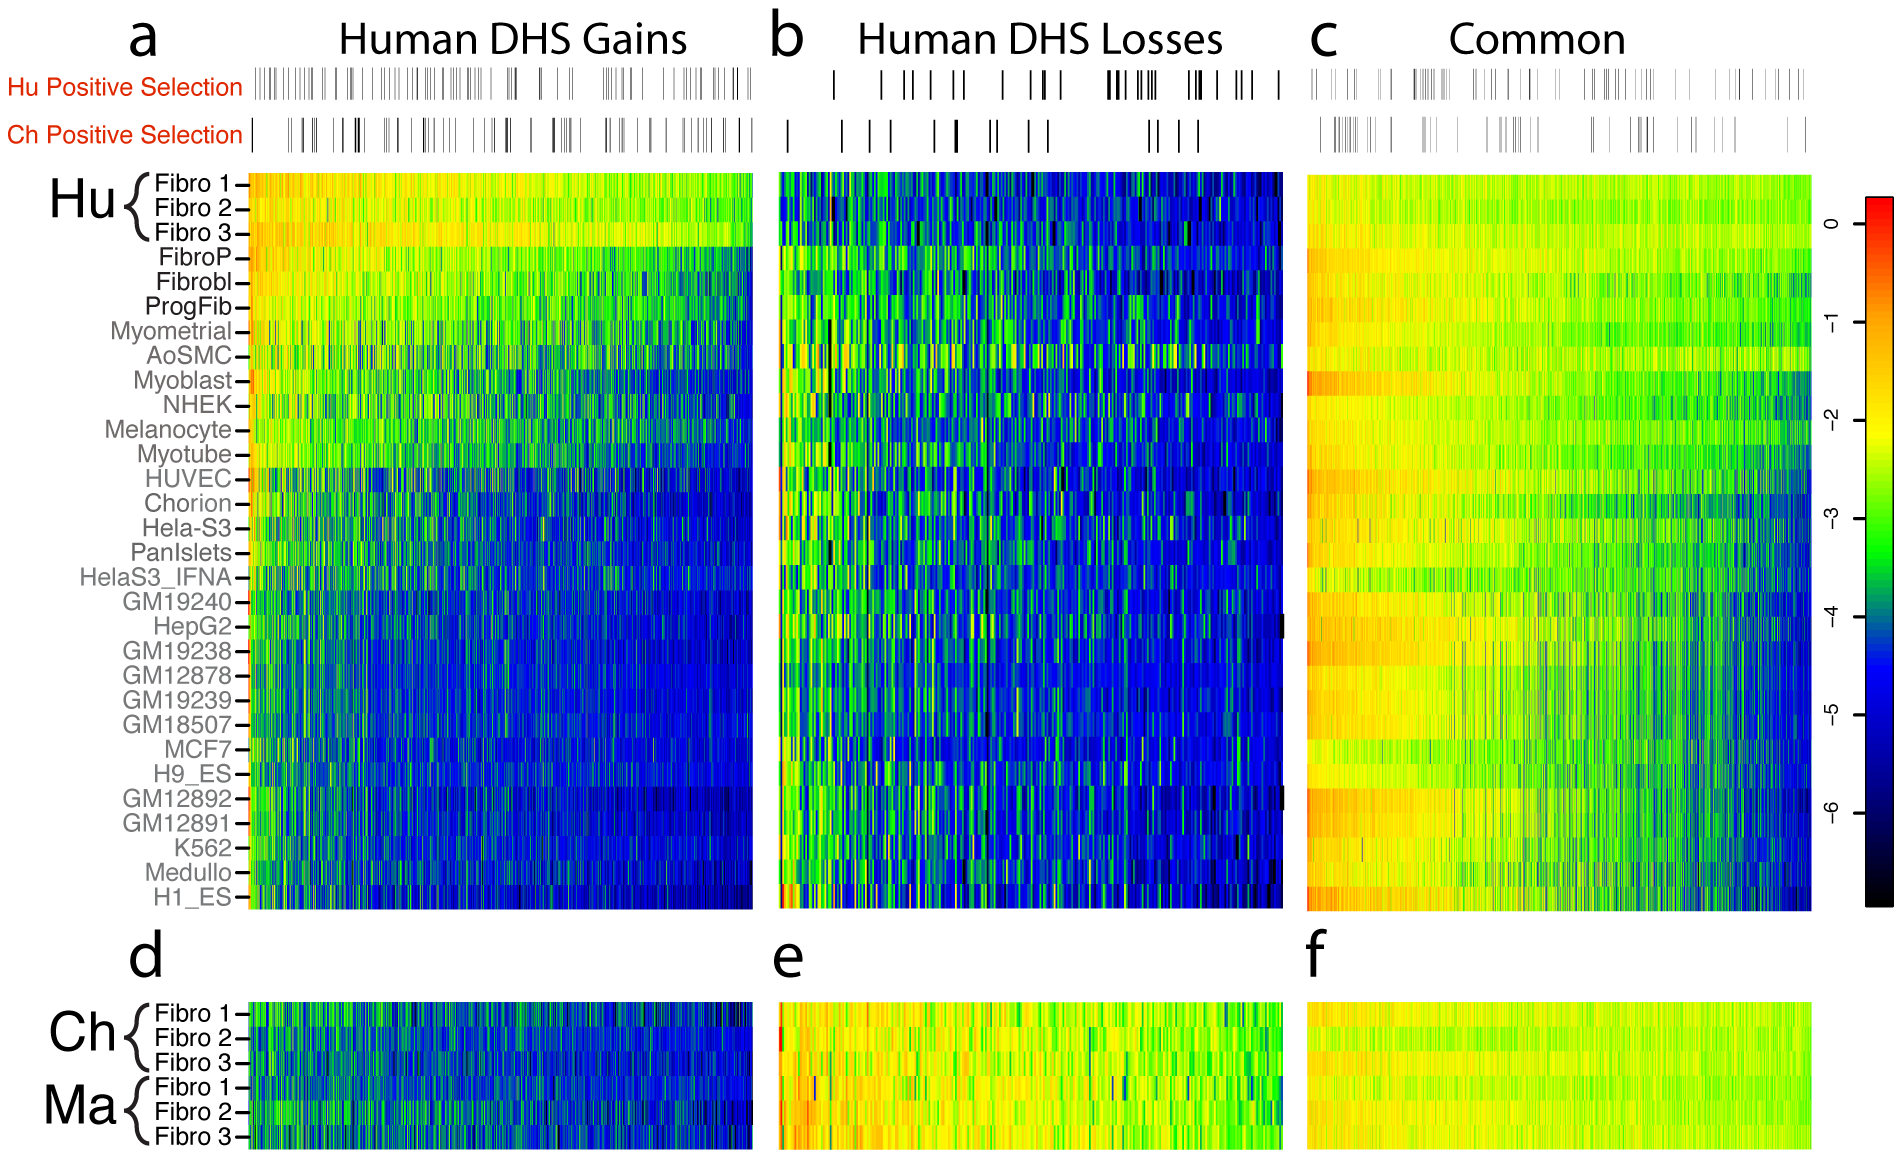 Comparison of human DHS site gains and losses to DNase-seq data from other human cell types.